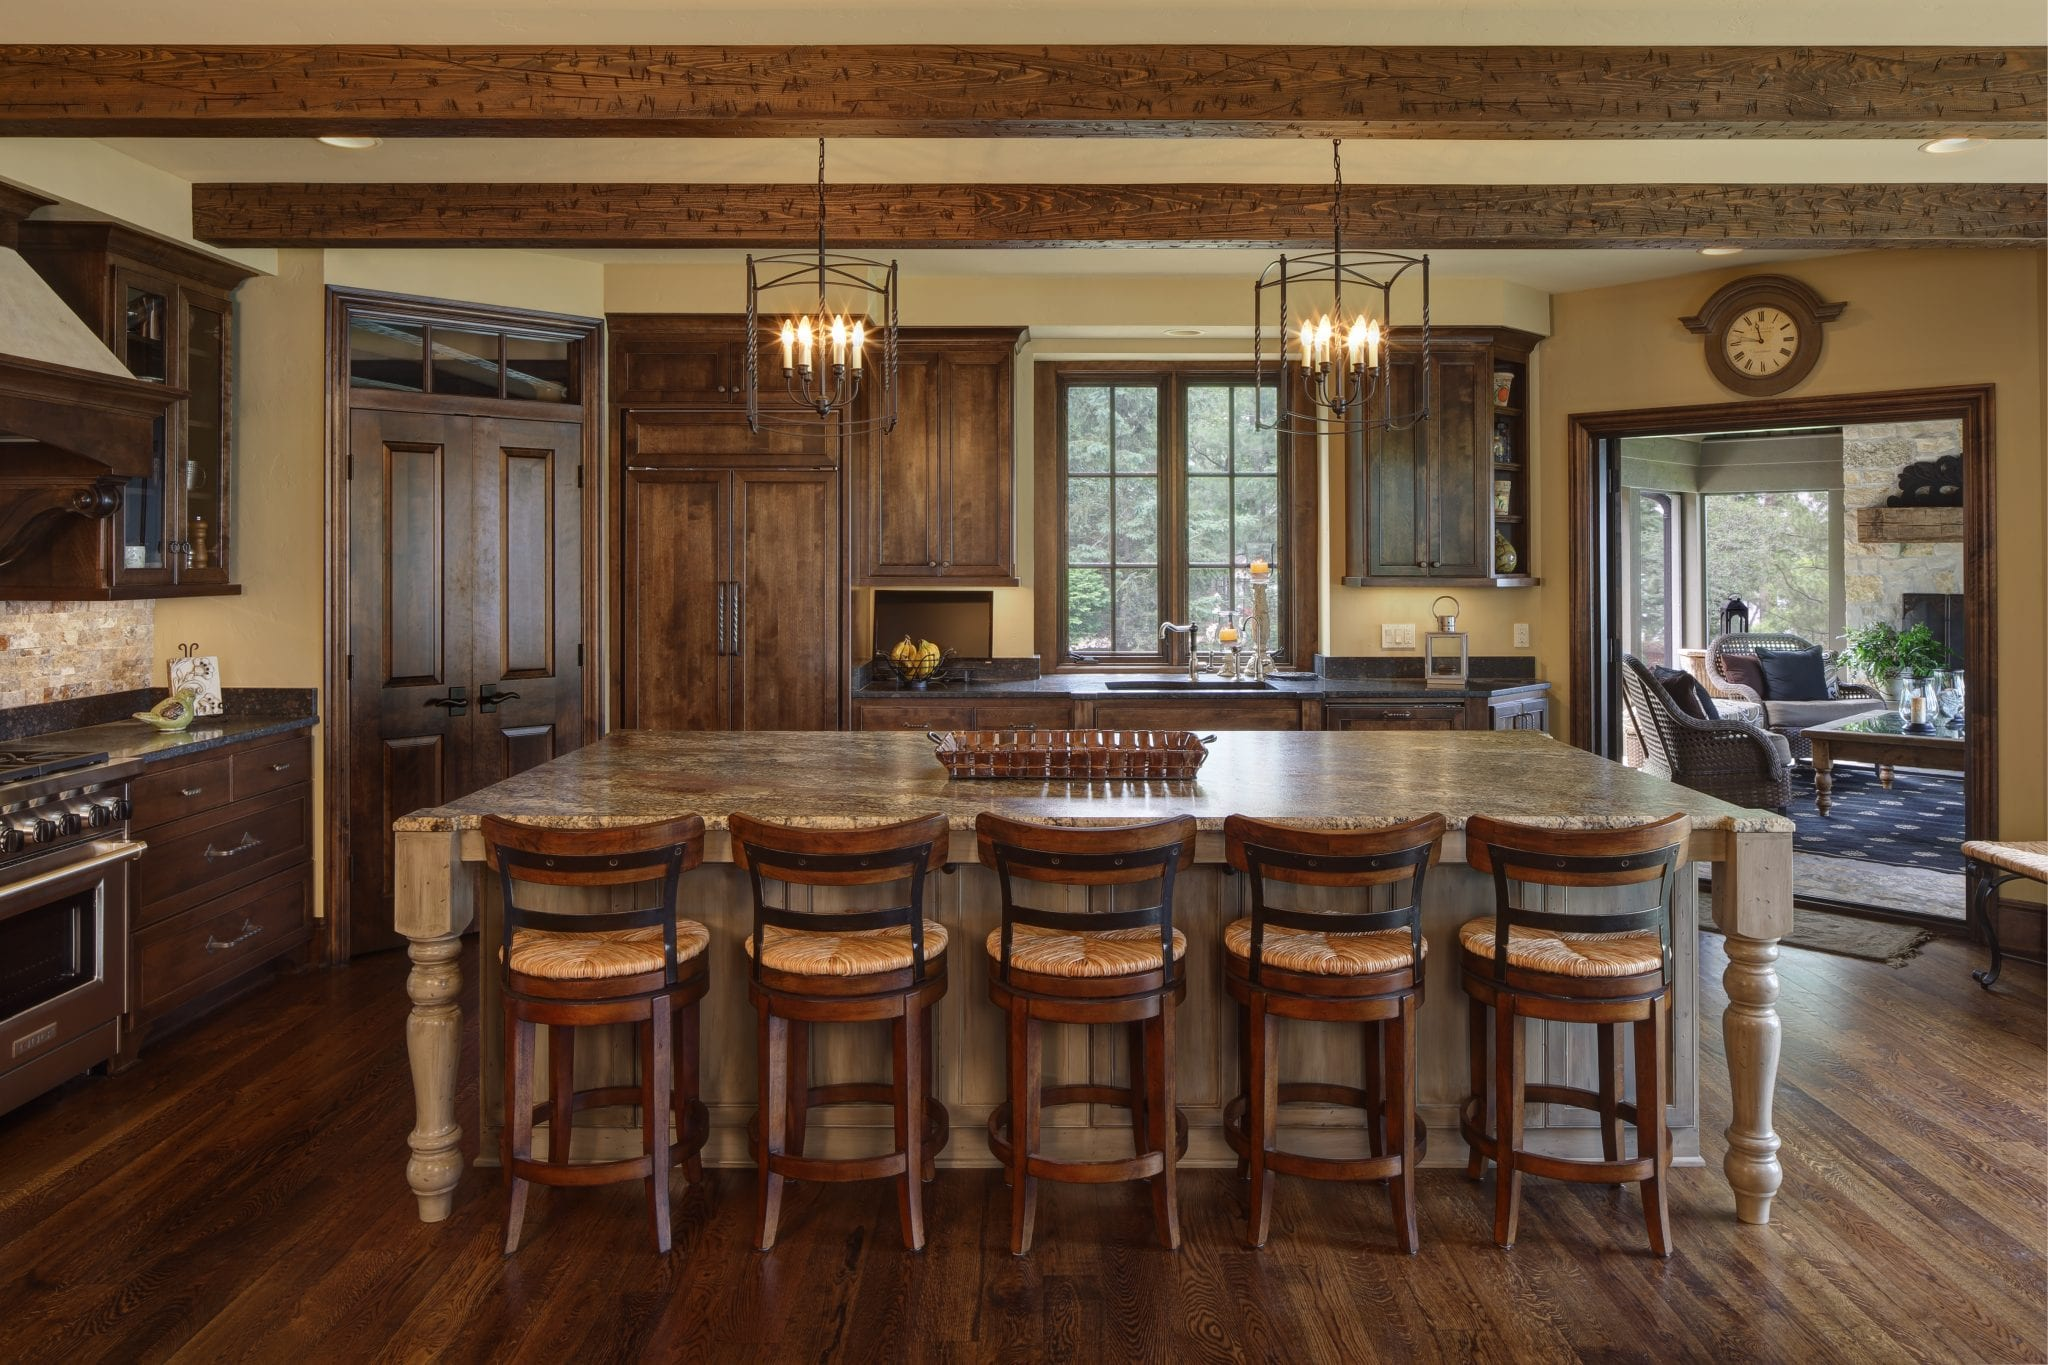 Colby Construction, Custom Lake Home Builders, newly built wooden focused kitchen